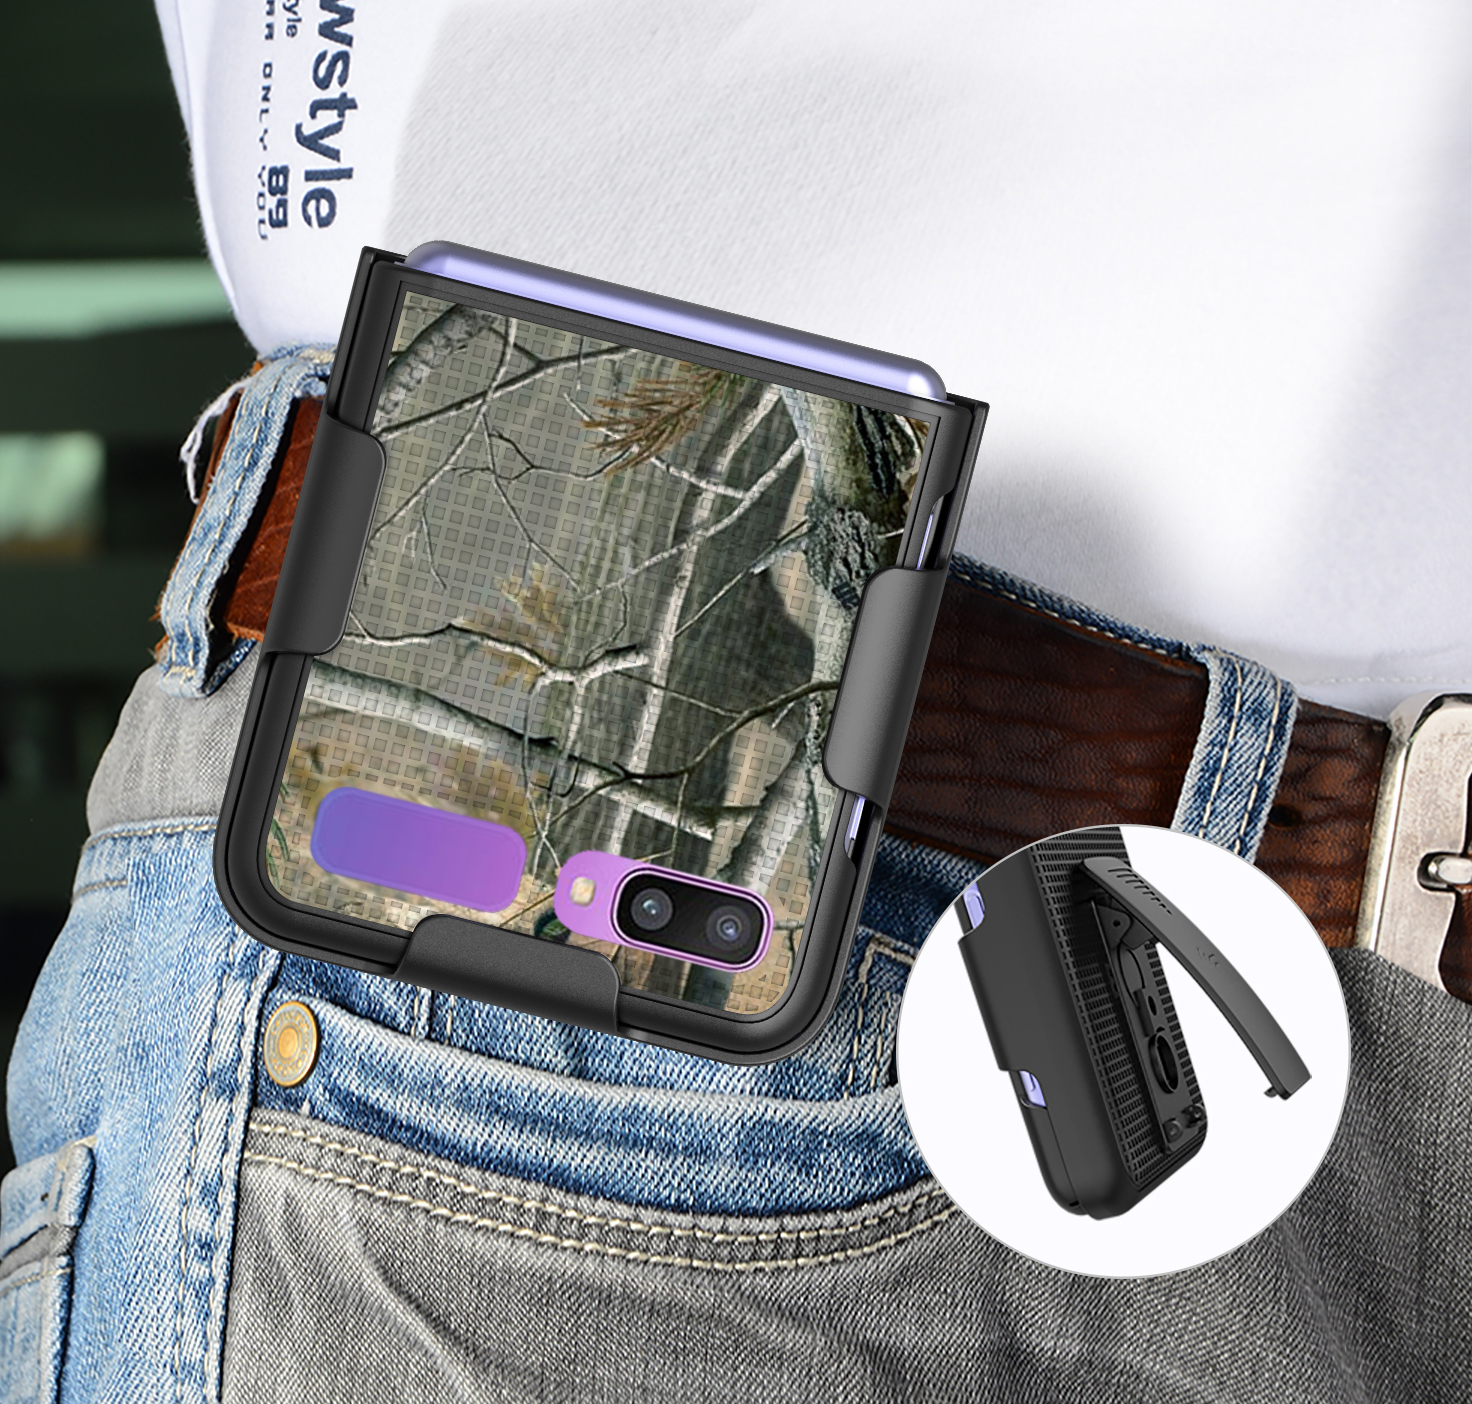 thumbnail 5 - Hard Protector Case Cover + Belt Clip Holster for Samsung Galaxy Z Flip 5G Phone